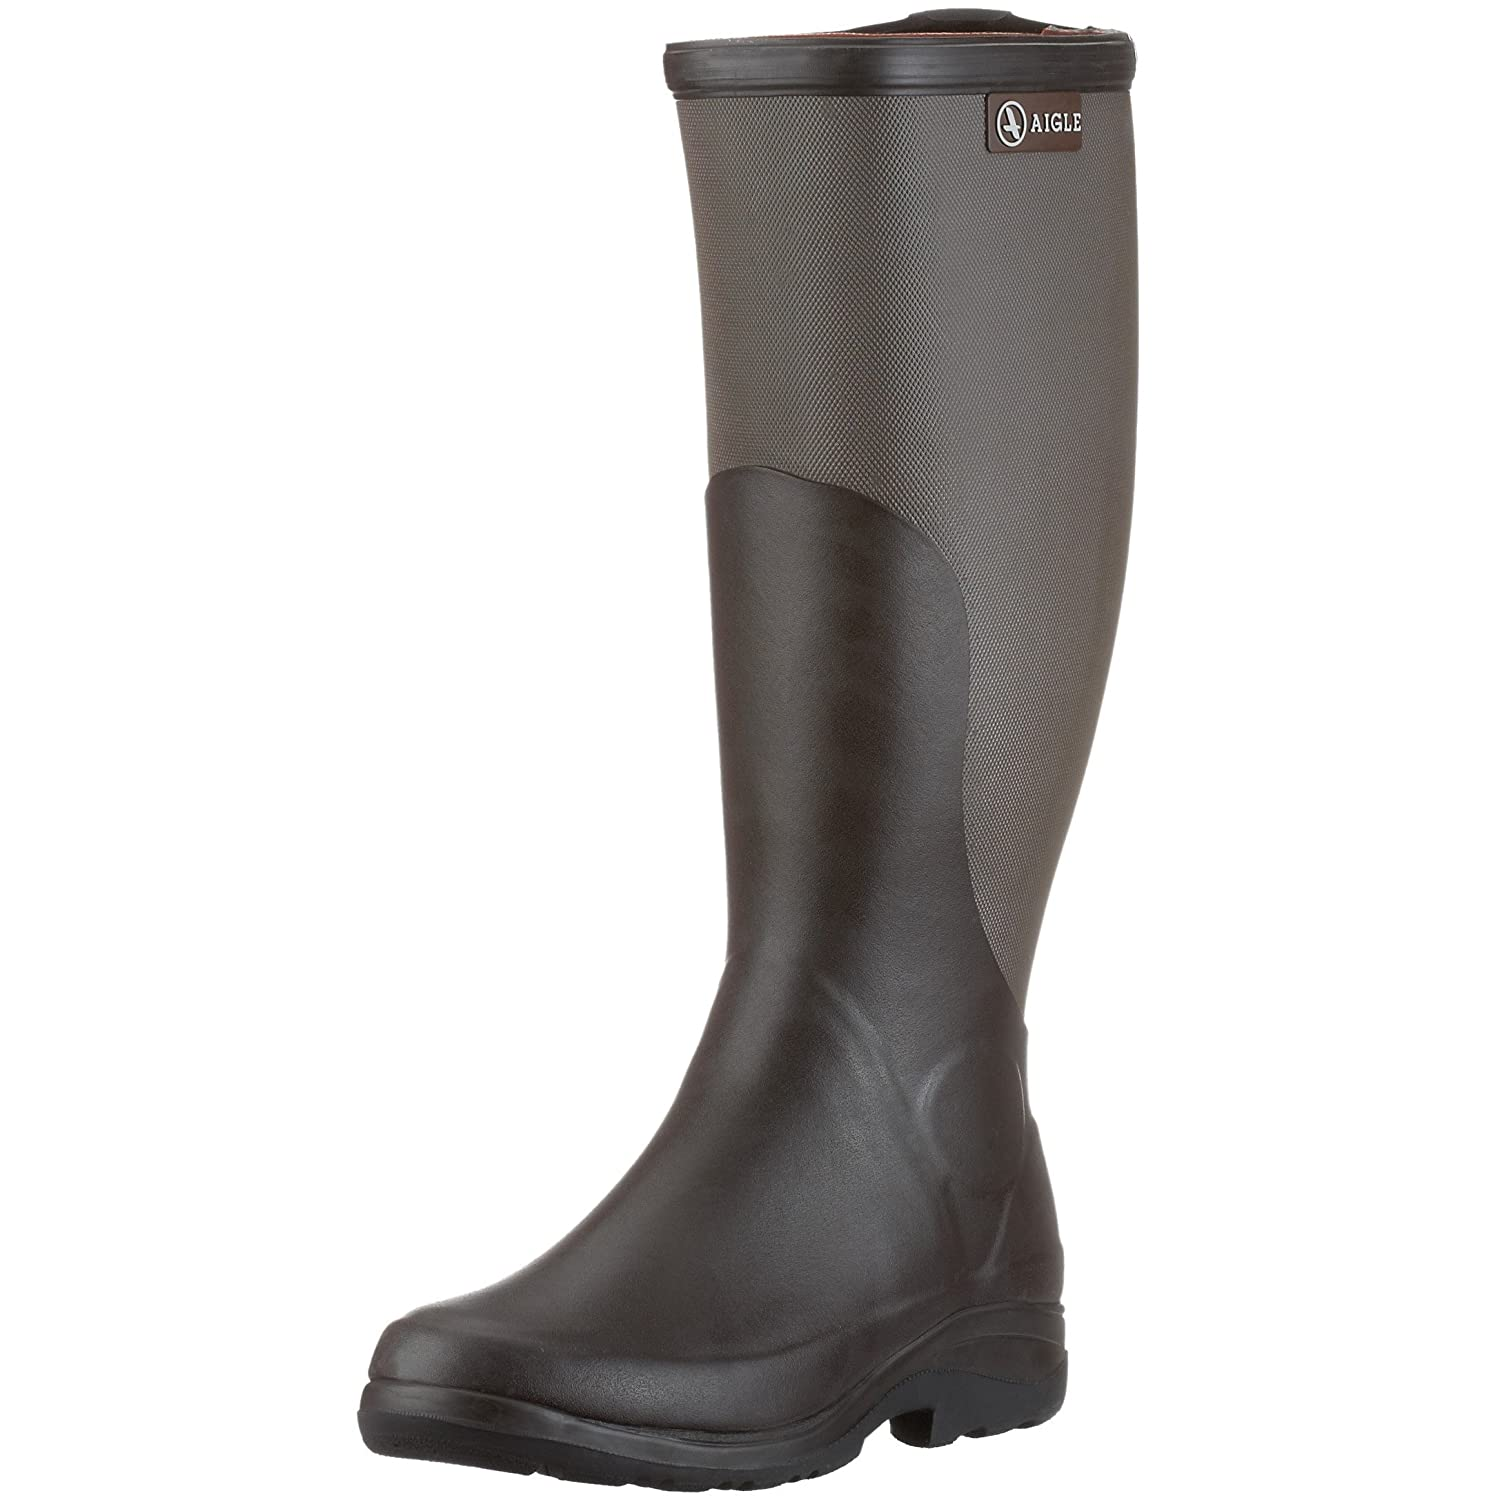 Aigle Rboot, Chaussures Multisport Outdoor Mixte Adulte (Brun/Taupe) Marron Adulte (Brun Rboot,/Taupe) 9310f0c - reprogrammed.space